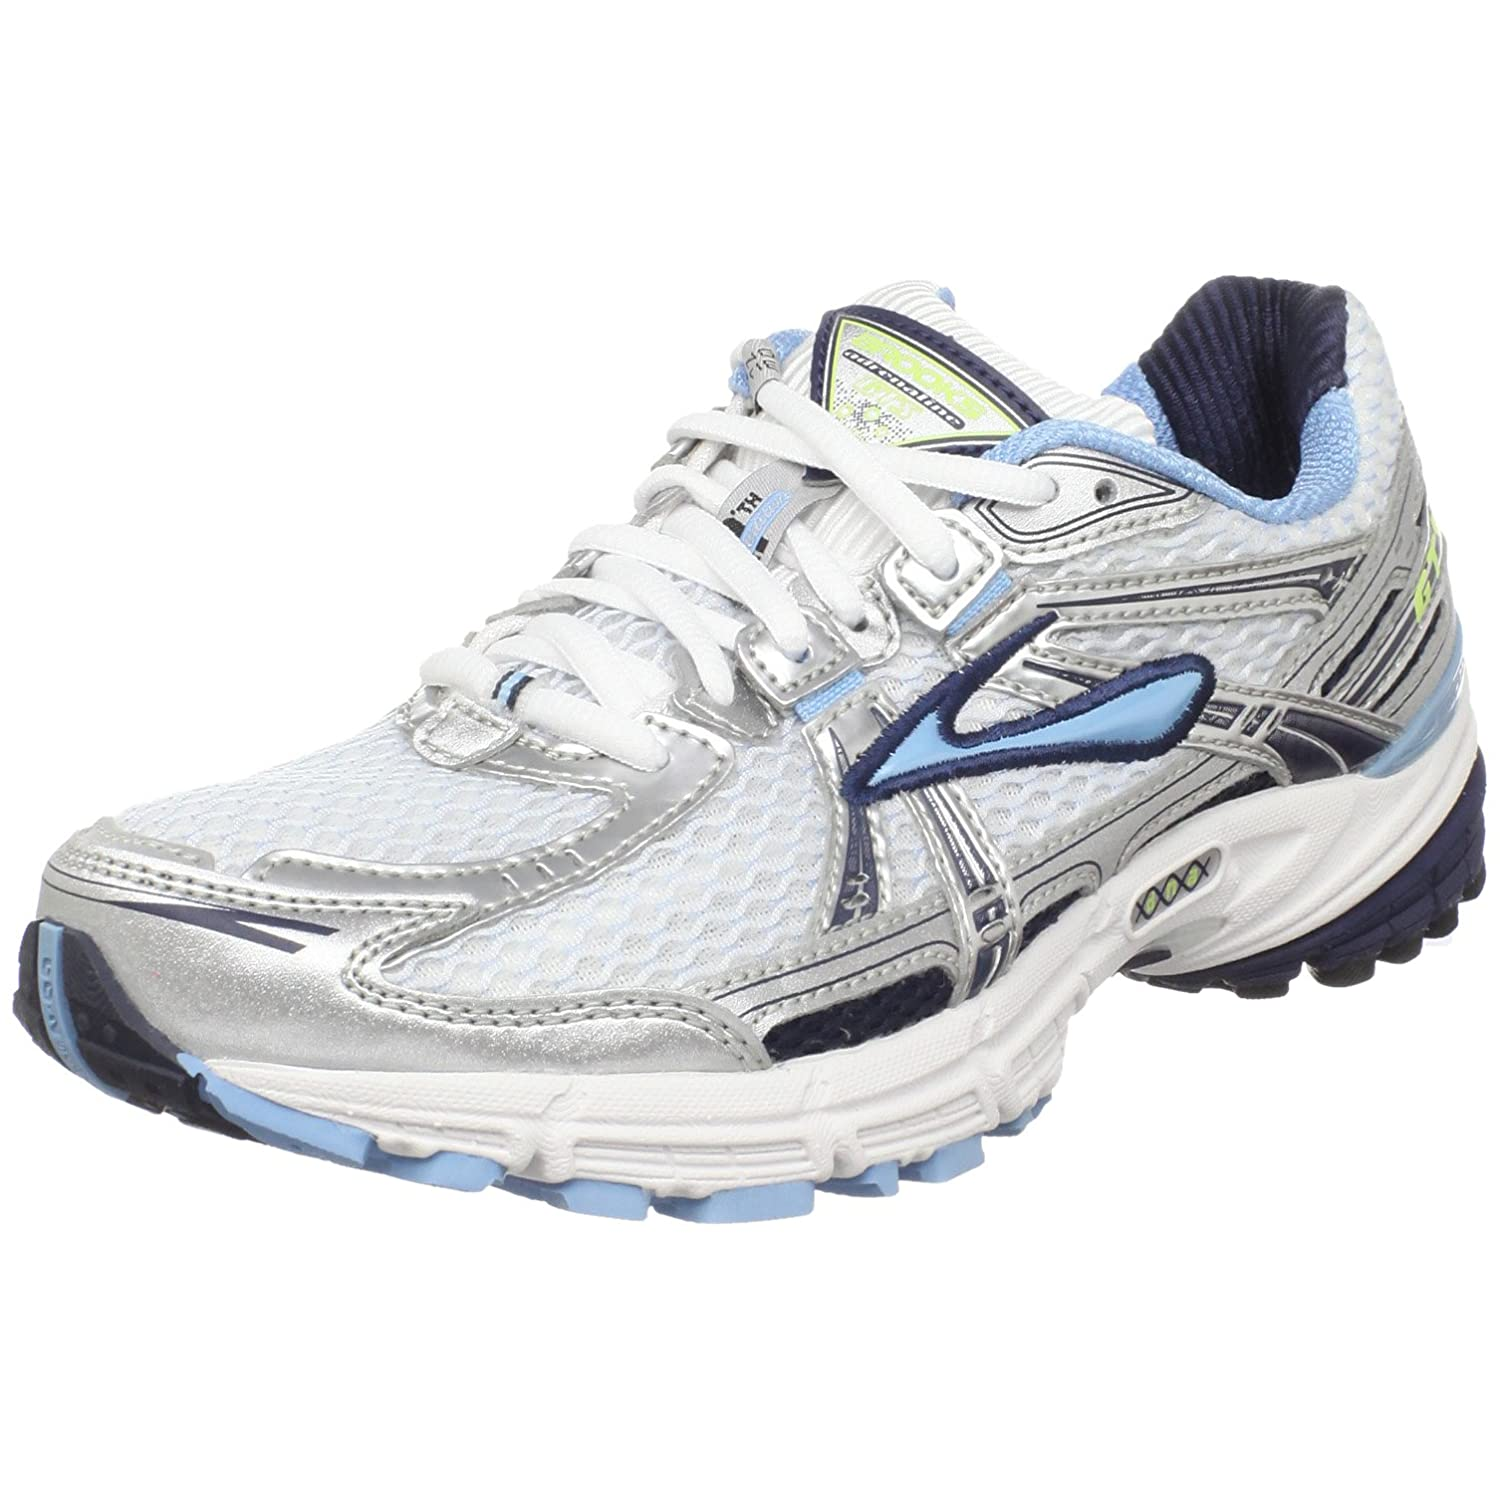 Brooks Adrenaline Gts 11 Damen Sportschuhe - Running